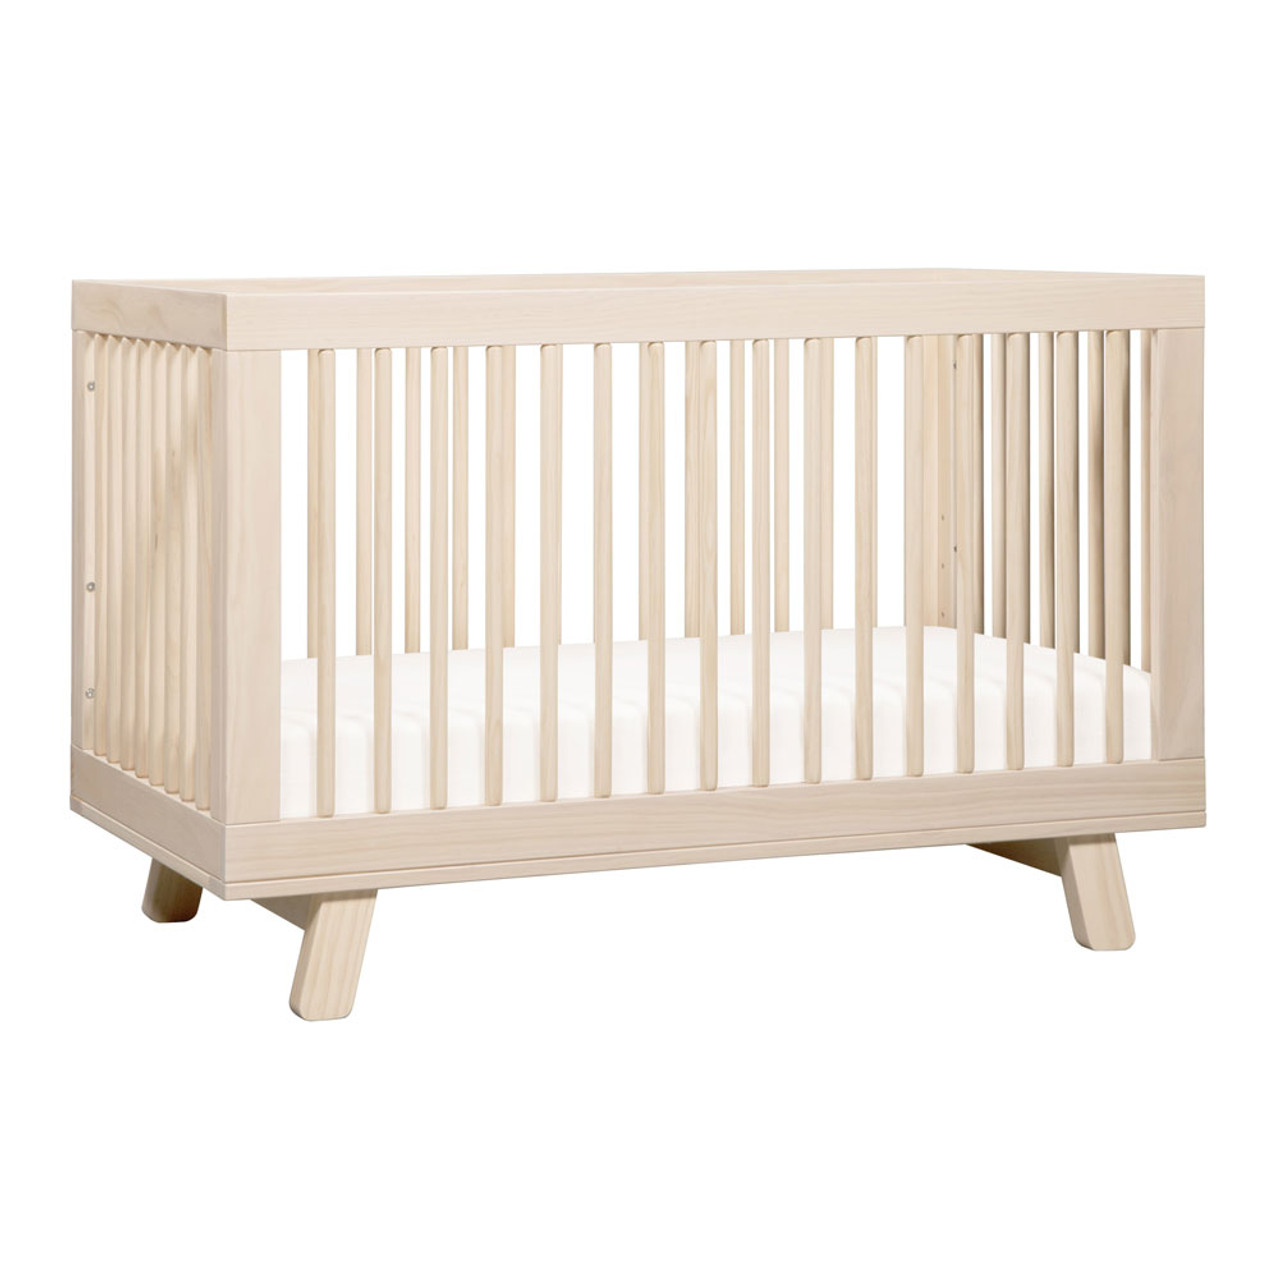 Babyletto Hudson 3 In 1 Convertible Crib With Toddler Bed Conversion Kit Washed Natural Dear Born Baby